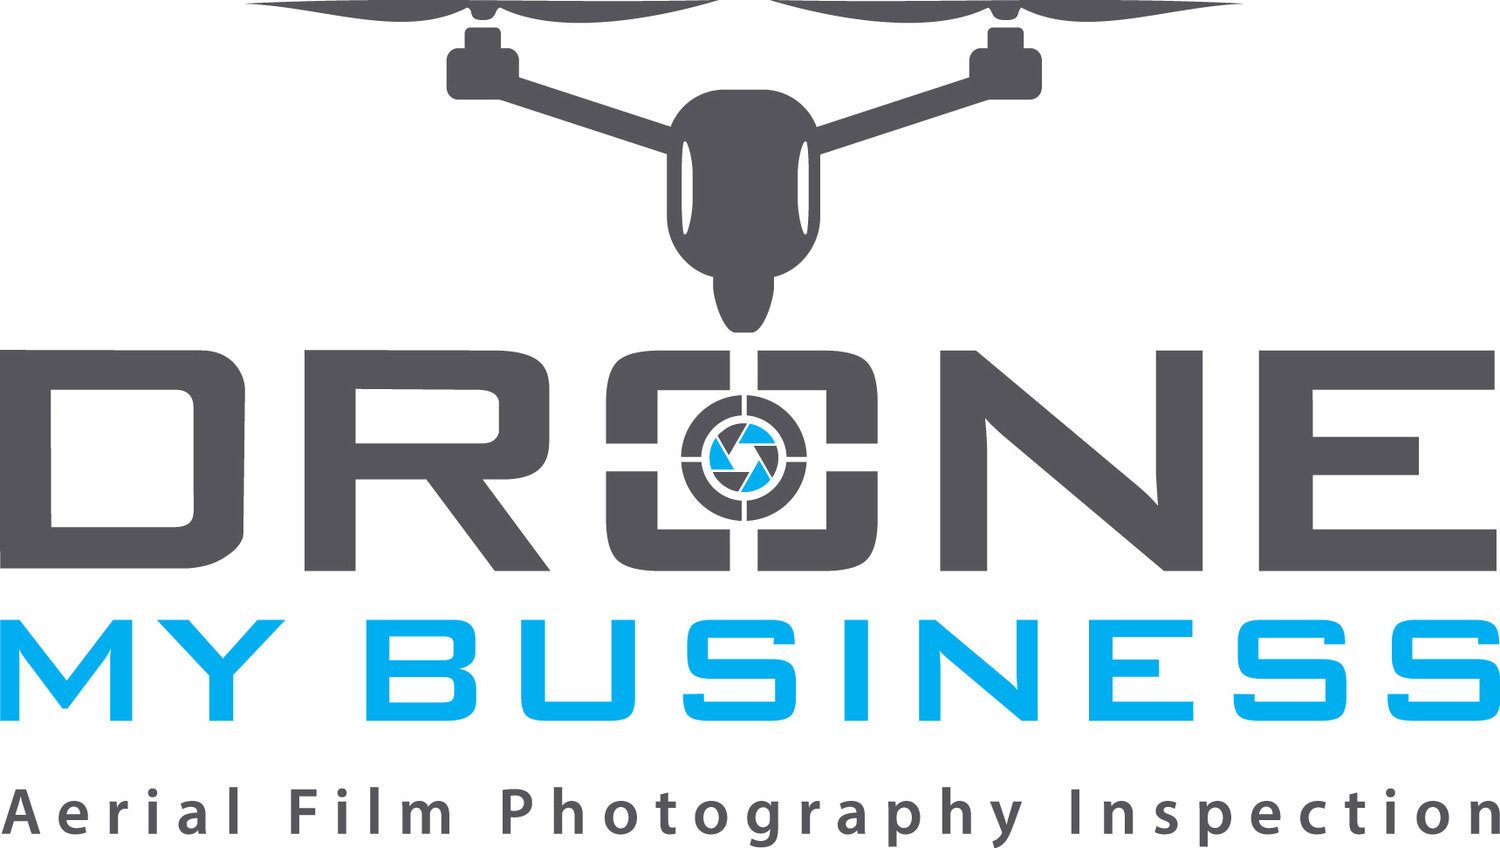 Drone My Business Ltd  building & industrial roof survey inspection services, Aerial filming video photography